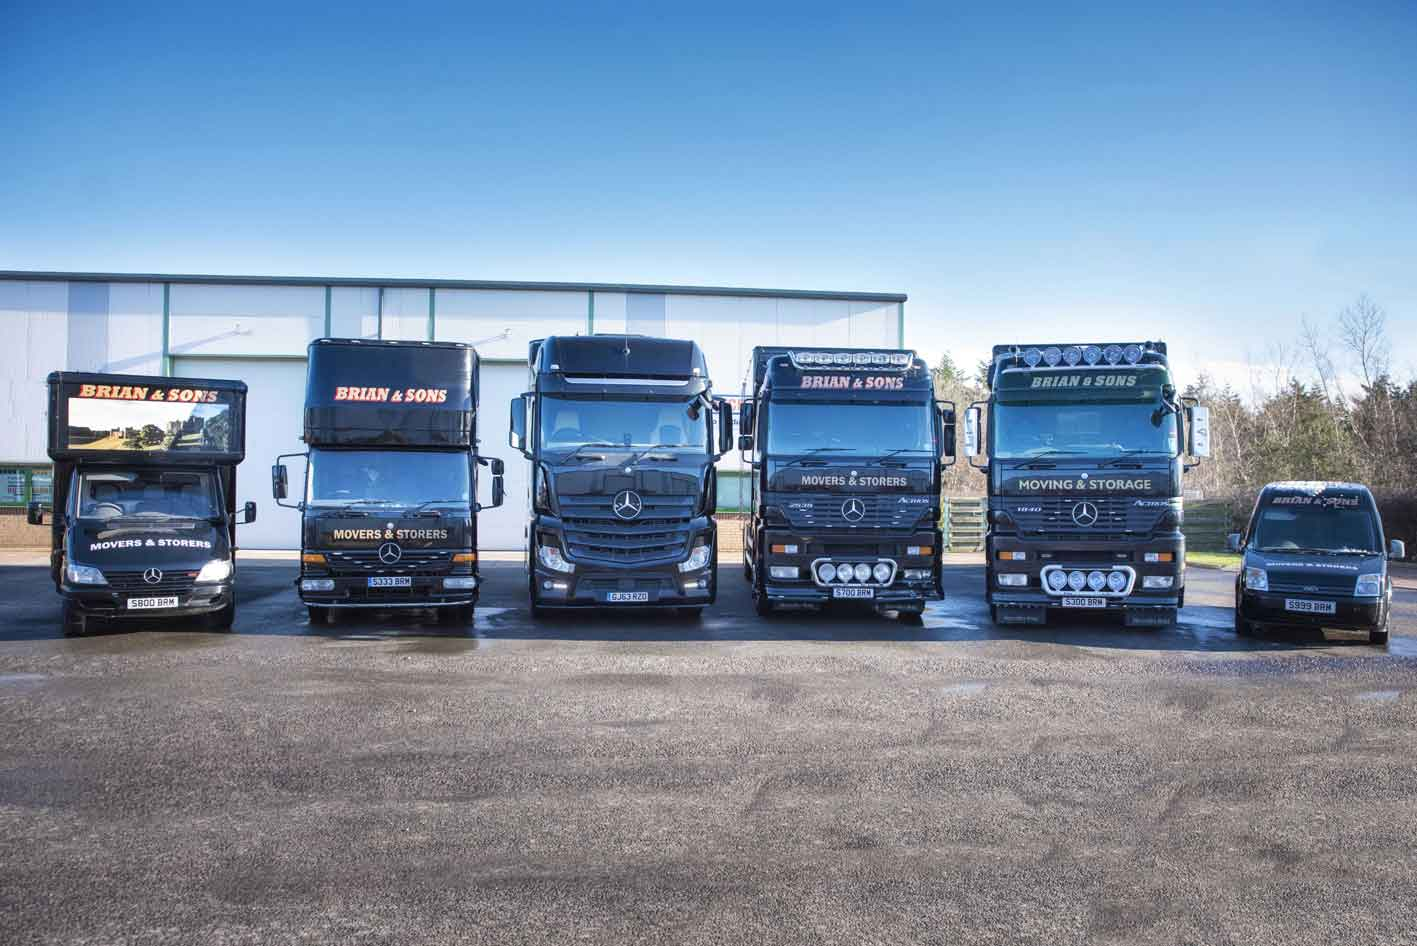 The Fleet at Brian and Sons Removals and Storage